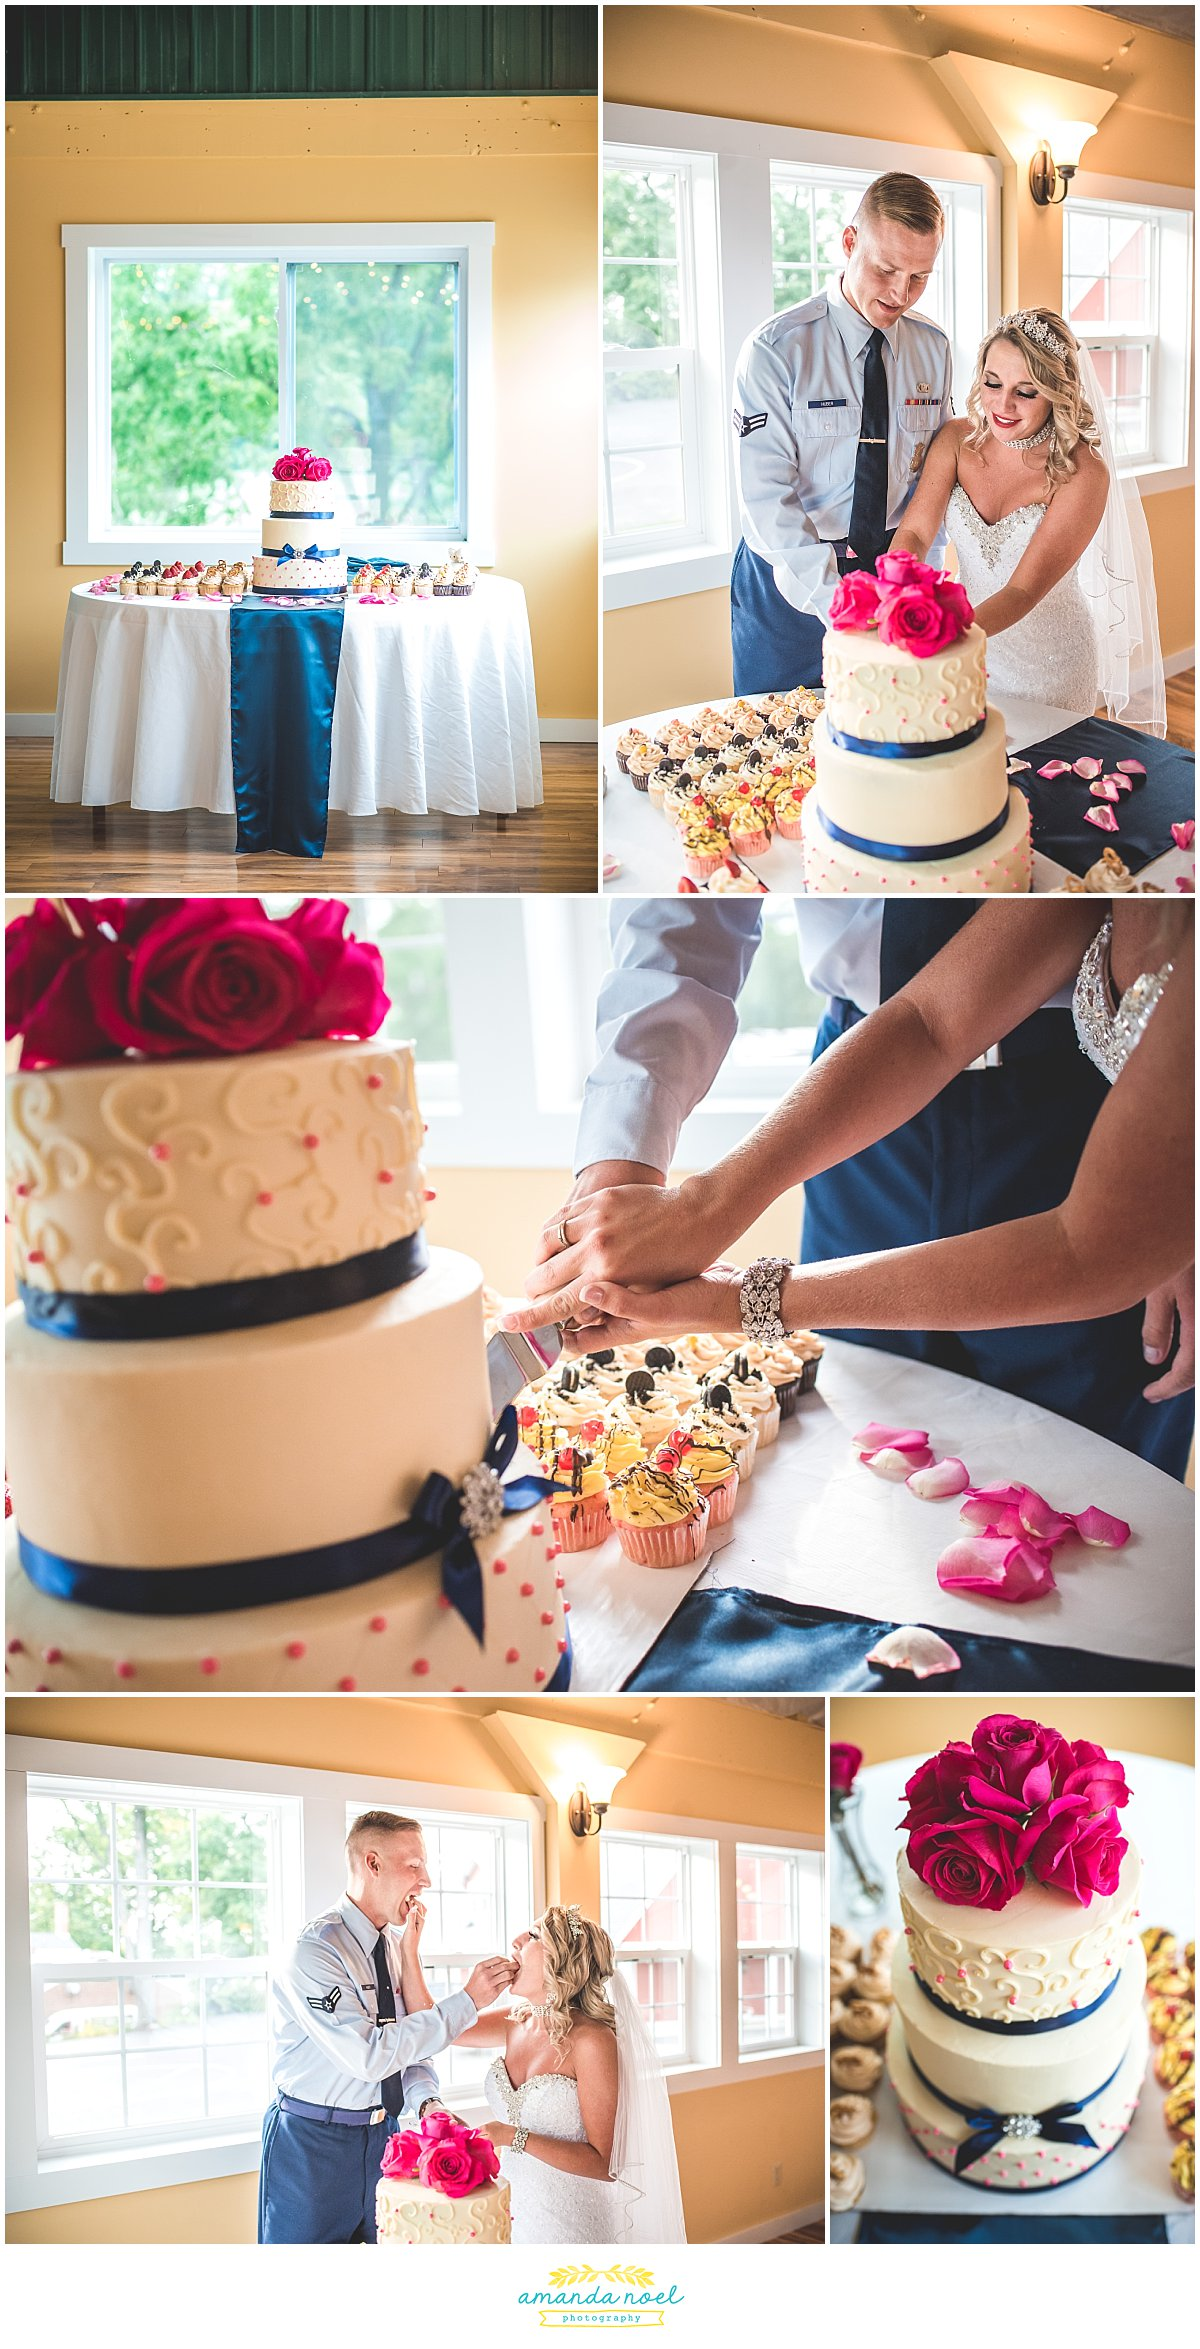 Springfield Ohio wedding cake cutting